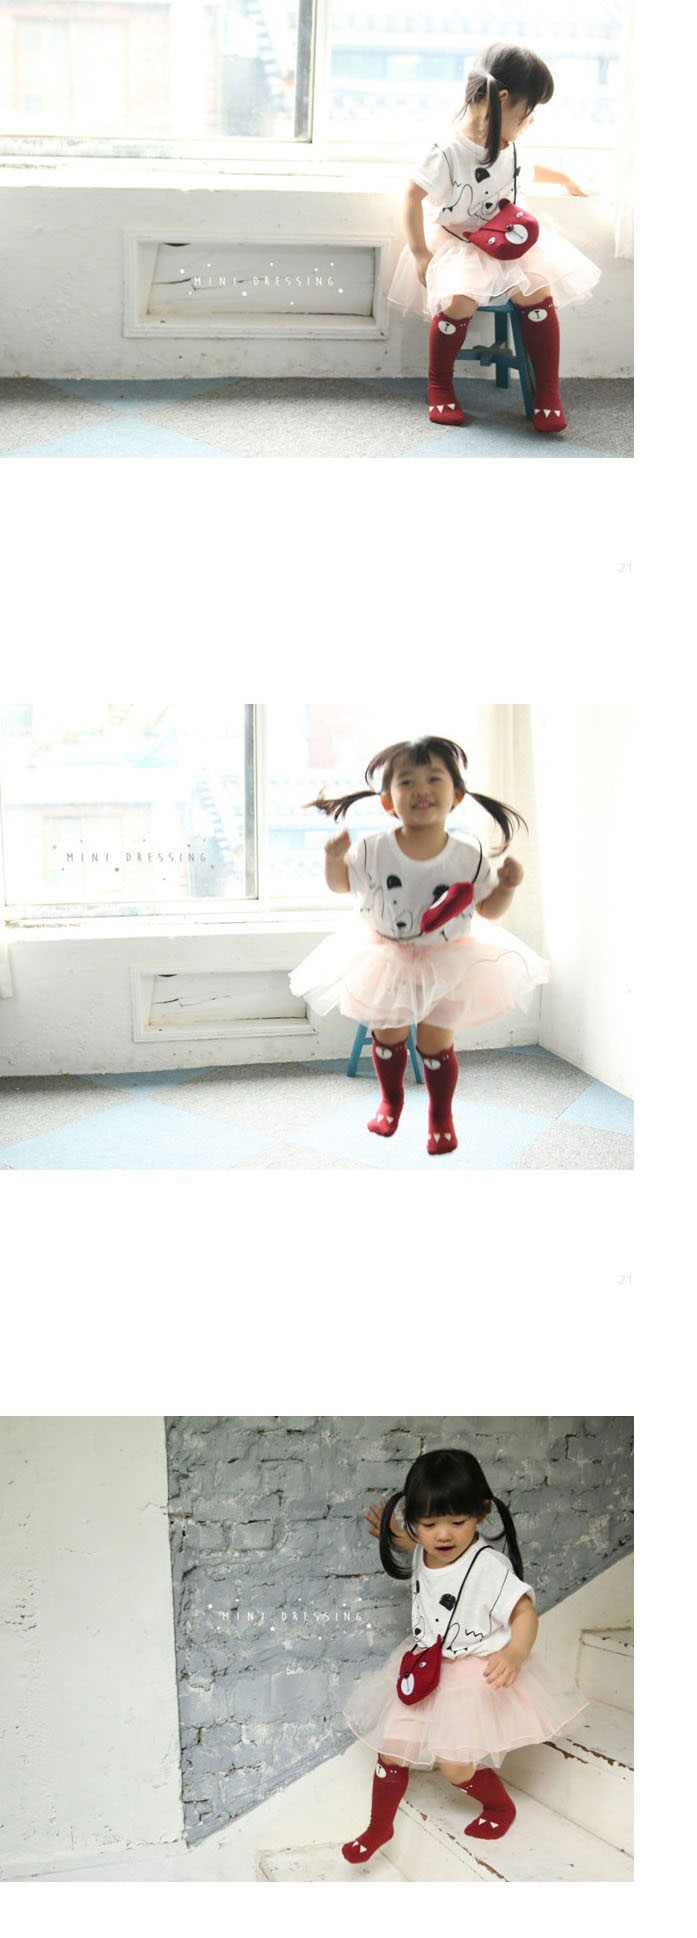 MINI-DRESSING---BRAND---Korean-Children-Fashion---#Kfashion4kids---912830+---large